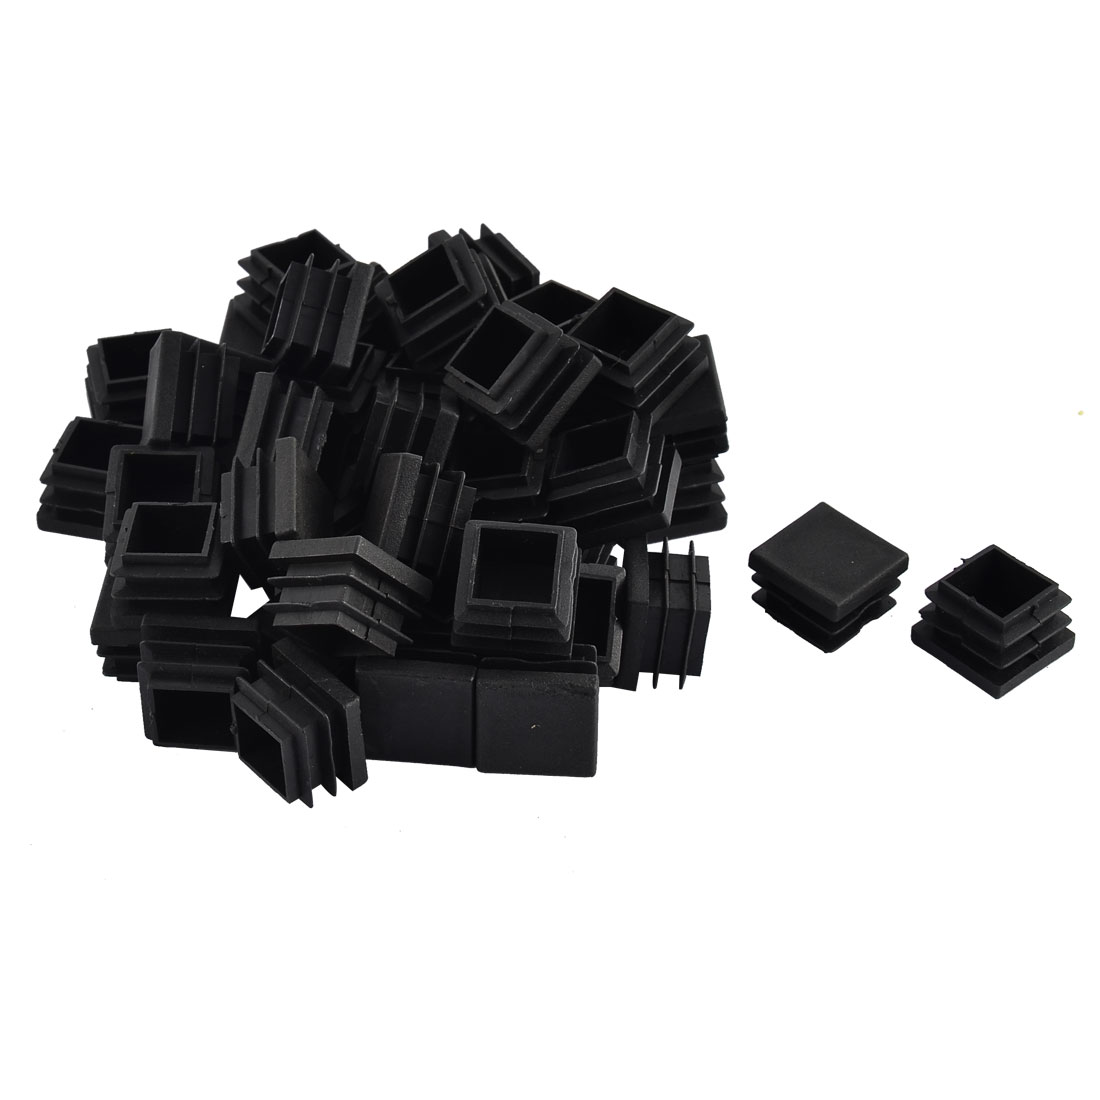 Furniture Table Chair Legs Plastic Square Tube Pipe Insert Cap Cover Black 22 x 22mm 50pcs